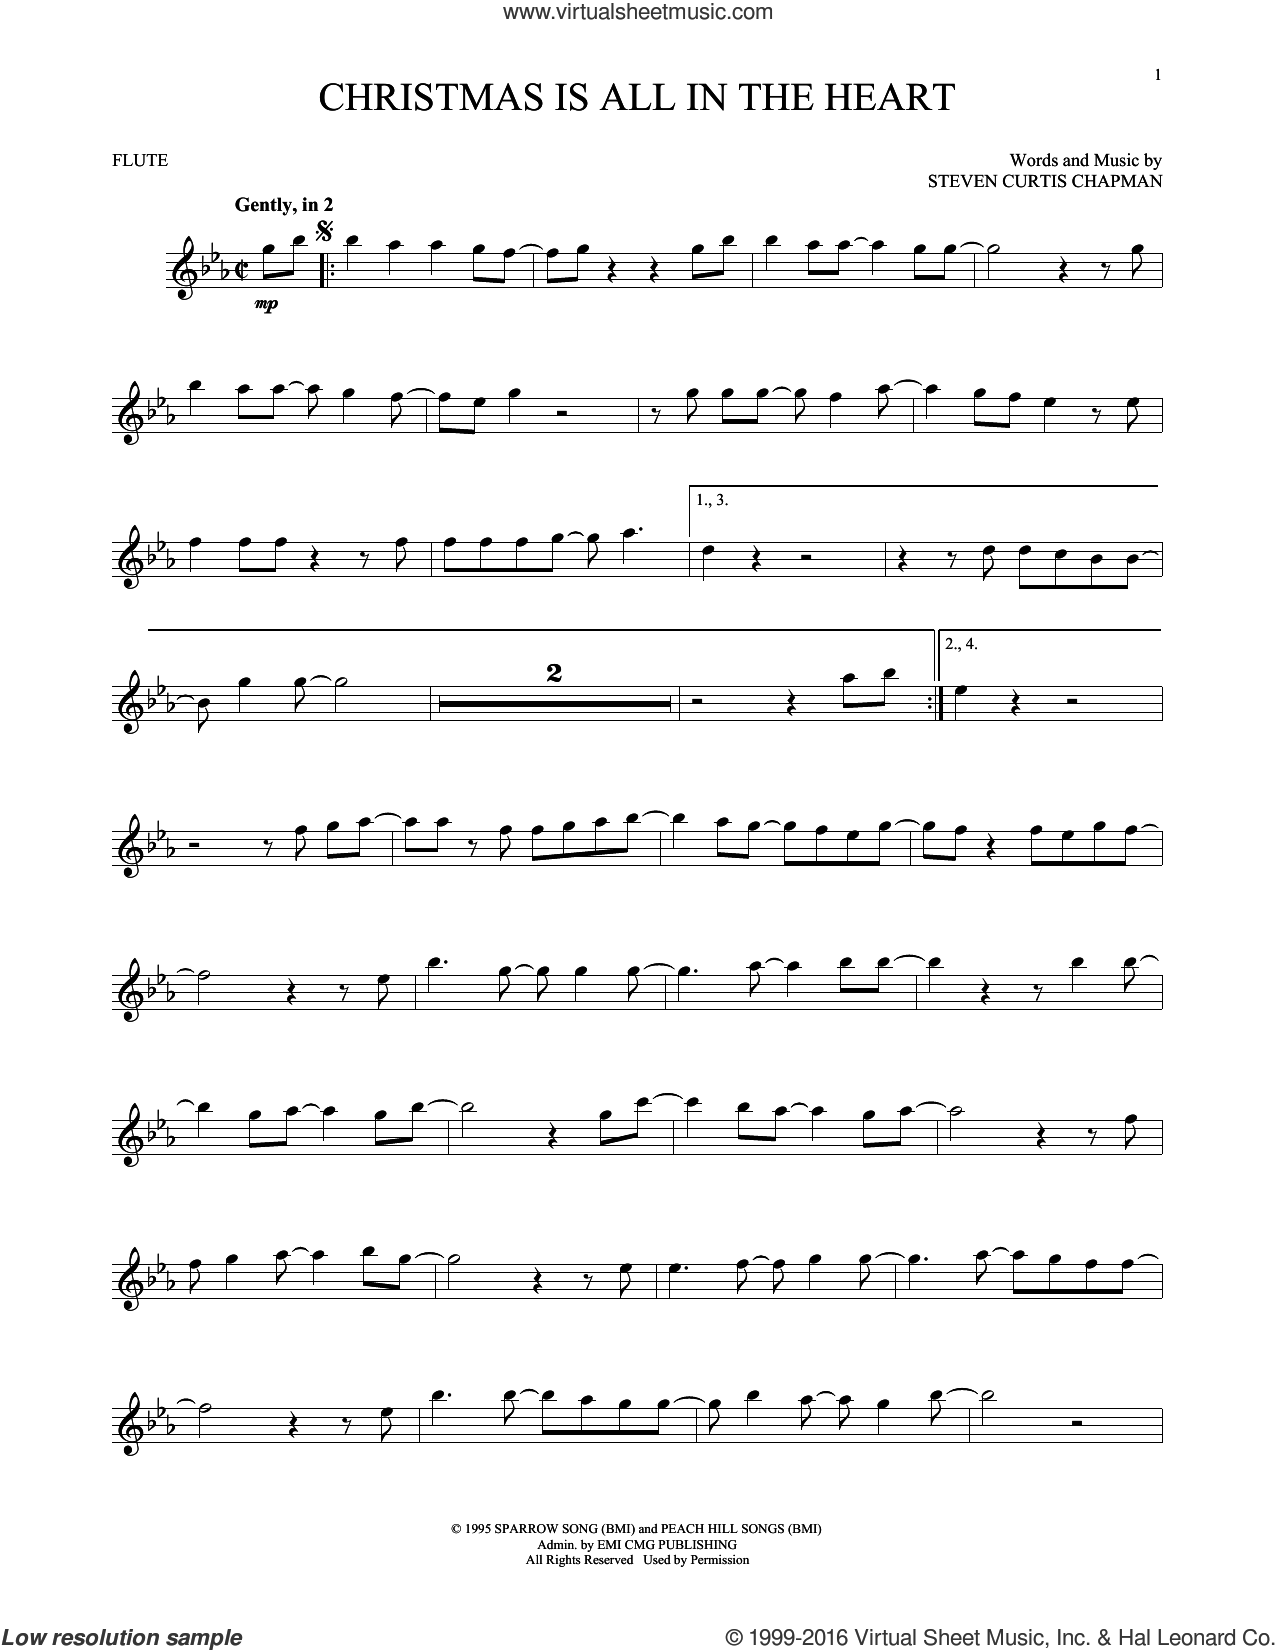 Christmas Is All In The Heart sheet music for flute solo by Steven Curtis Chapman, intermediate